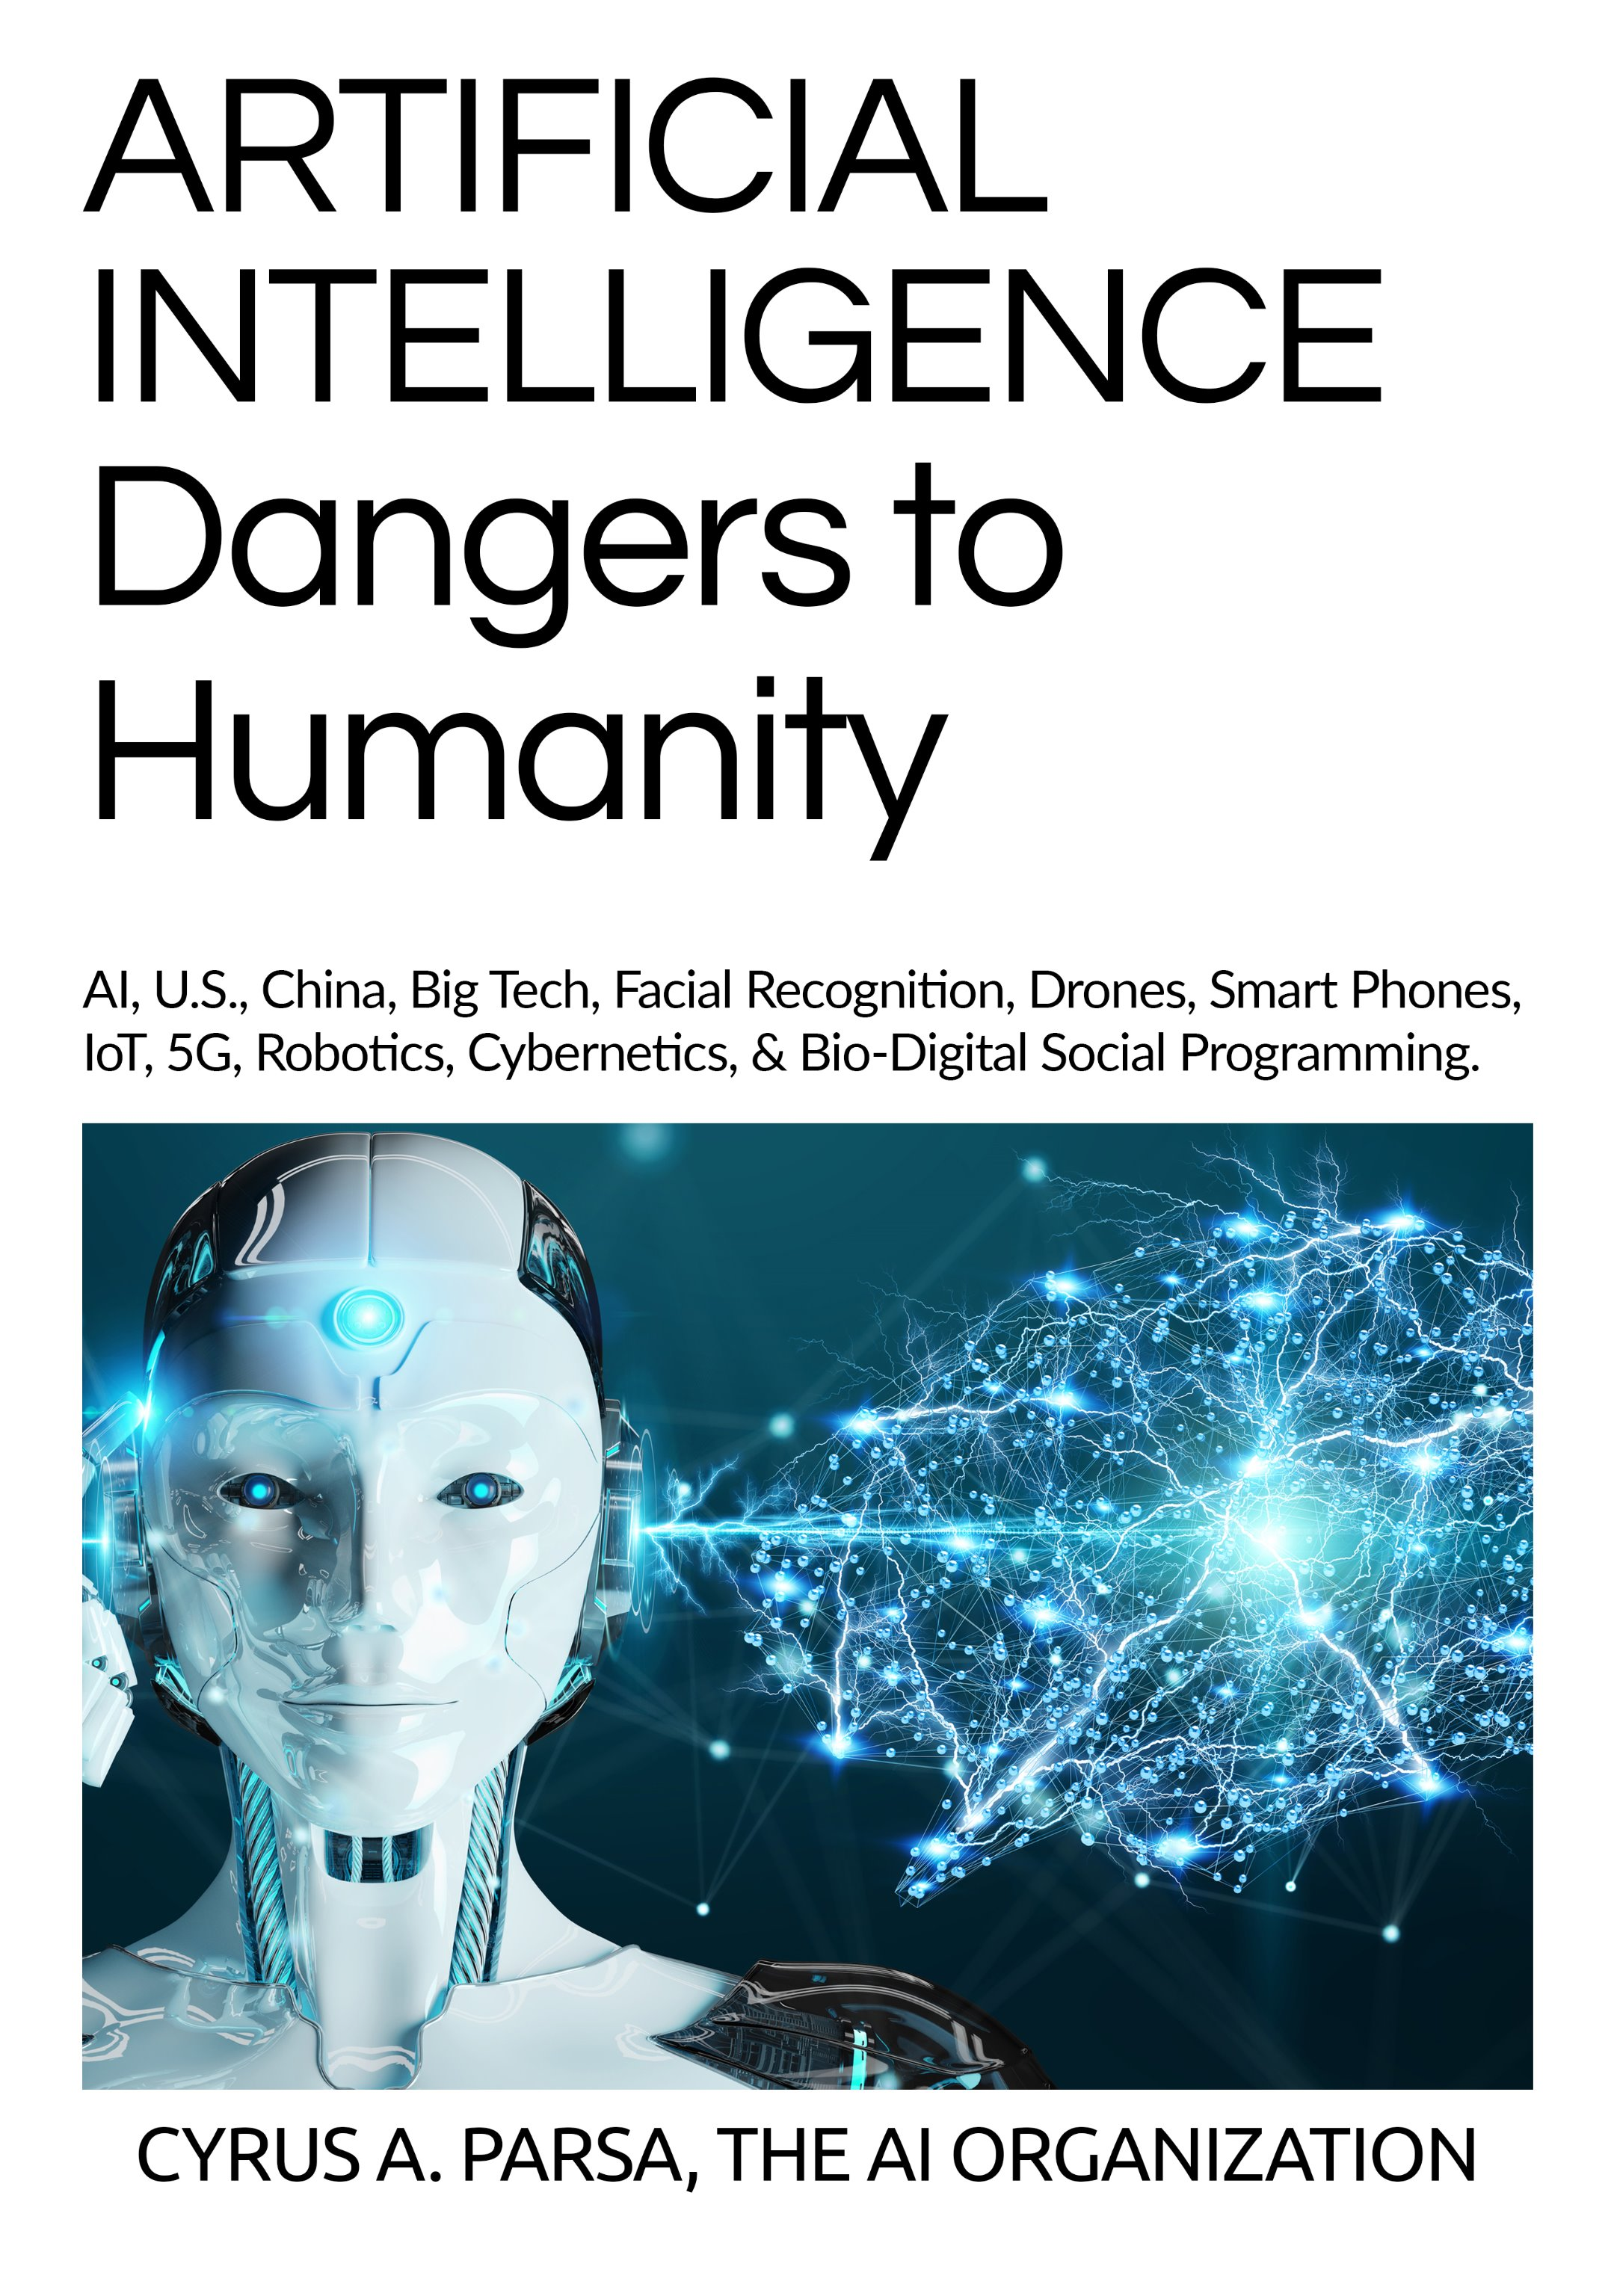 ARTIFICIAL INTELLIGENCE DANGERS TO HUMANITY - Via Zach Vorhies